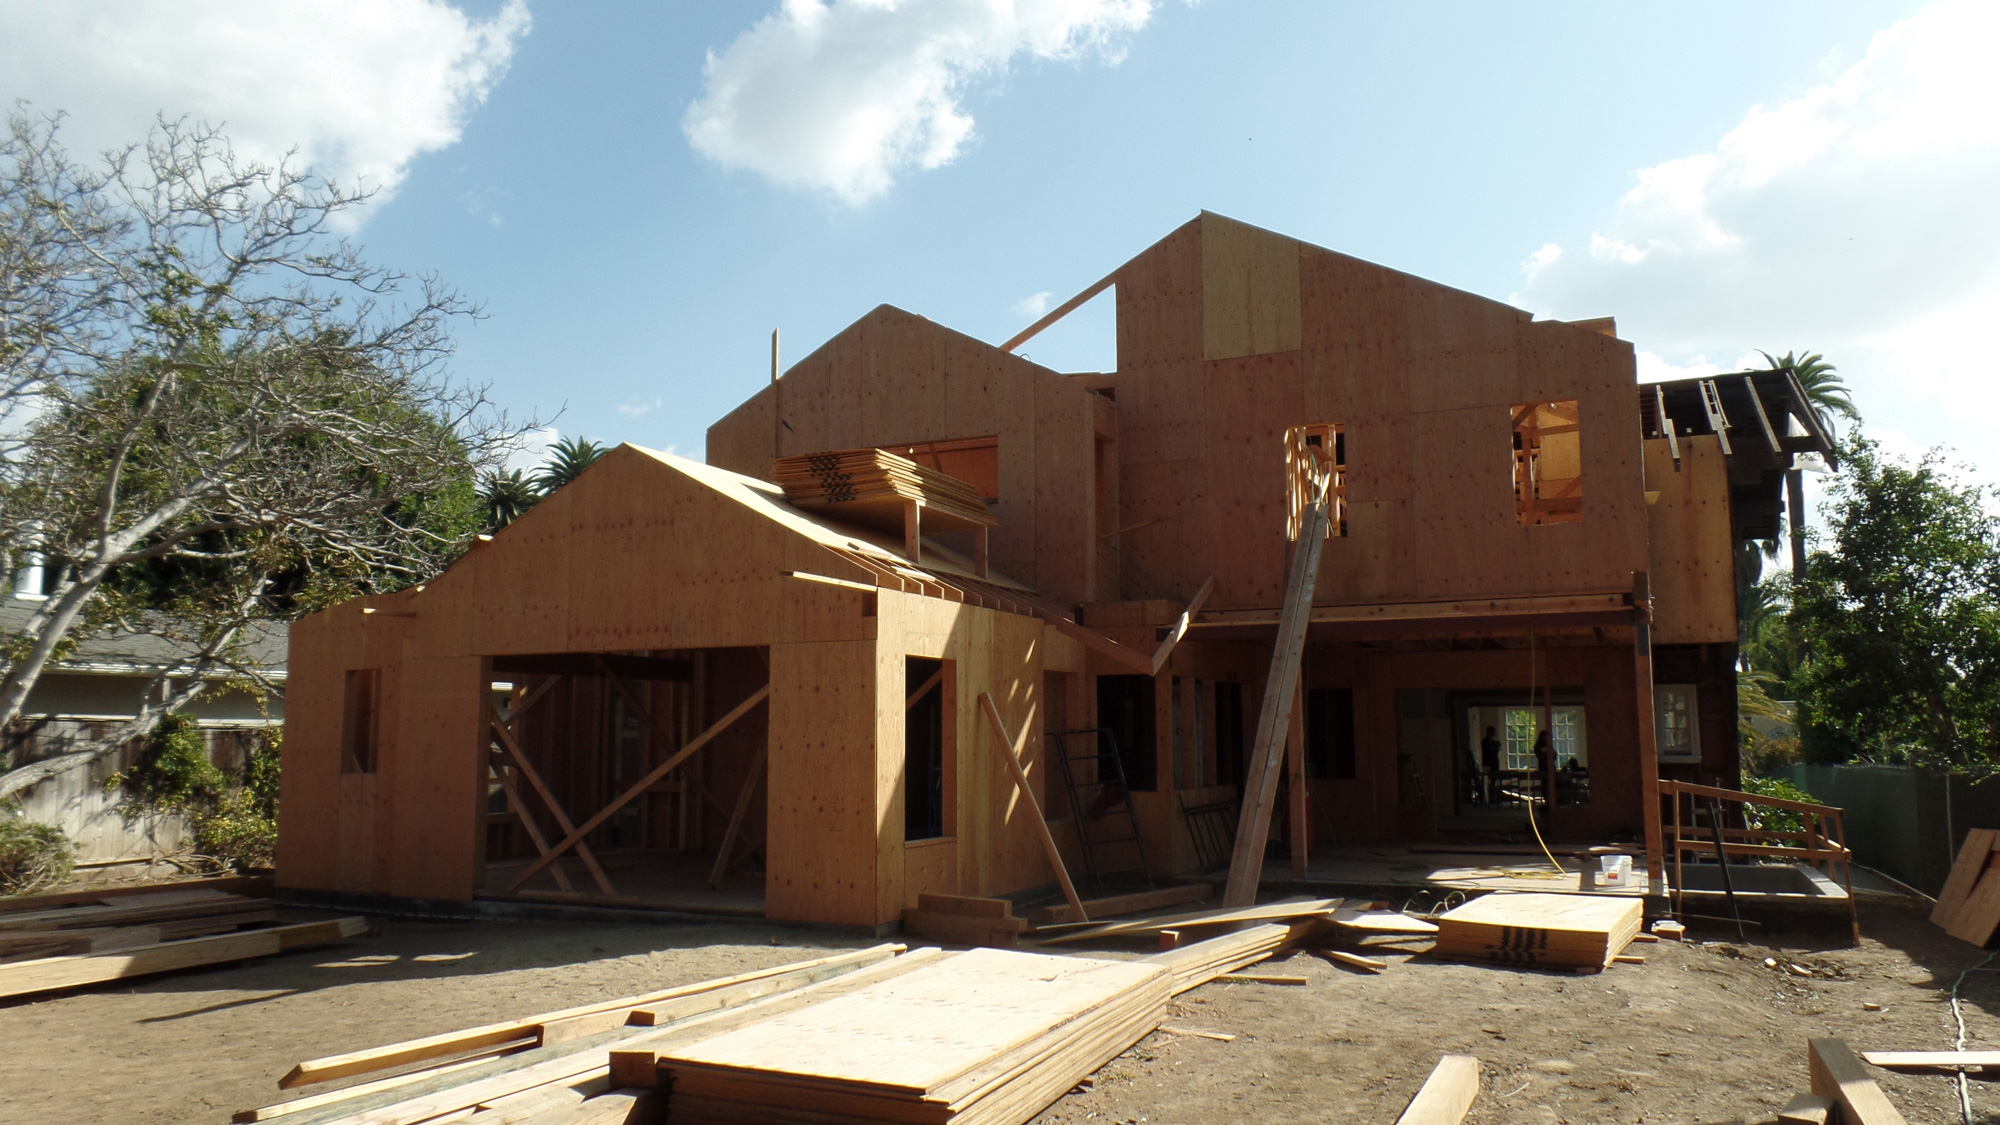 The addition takes shape, adding new family areas to the first floor, a new bedroom to the second floor, and play areas plus a guest suite to the basement.